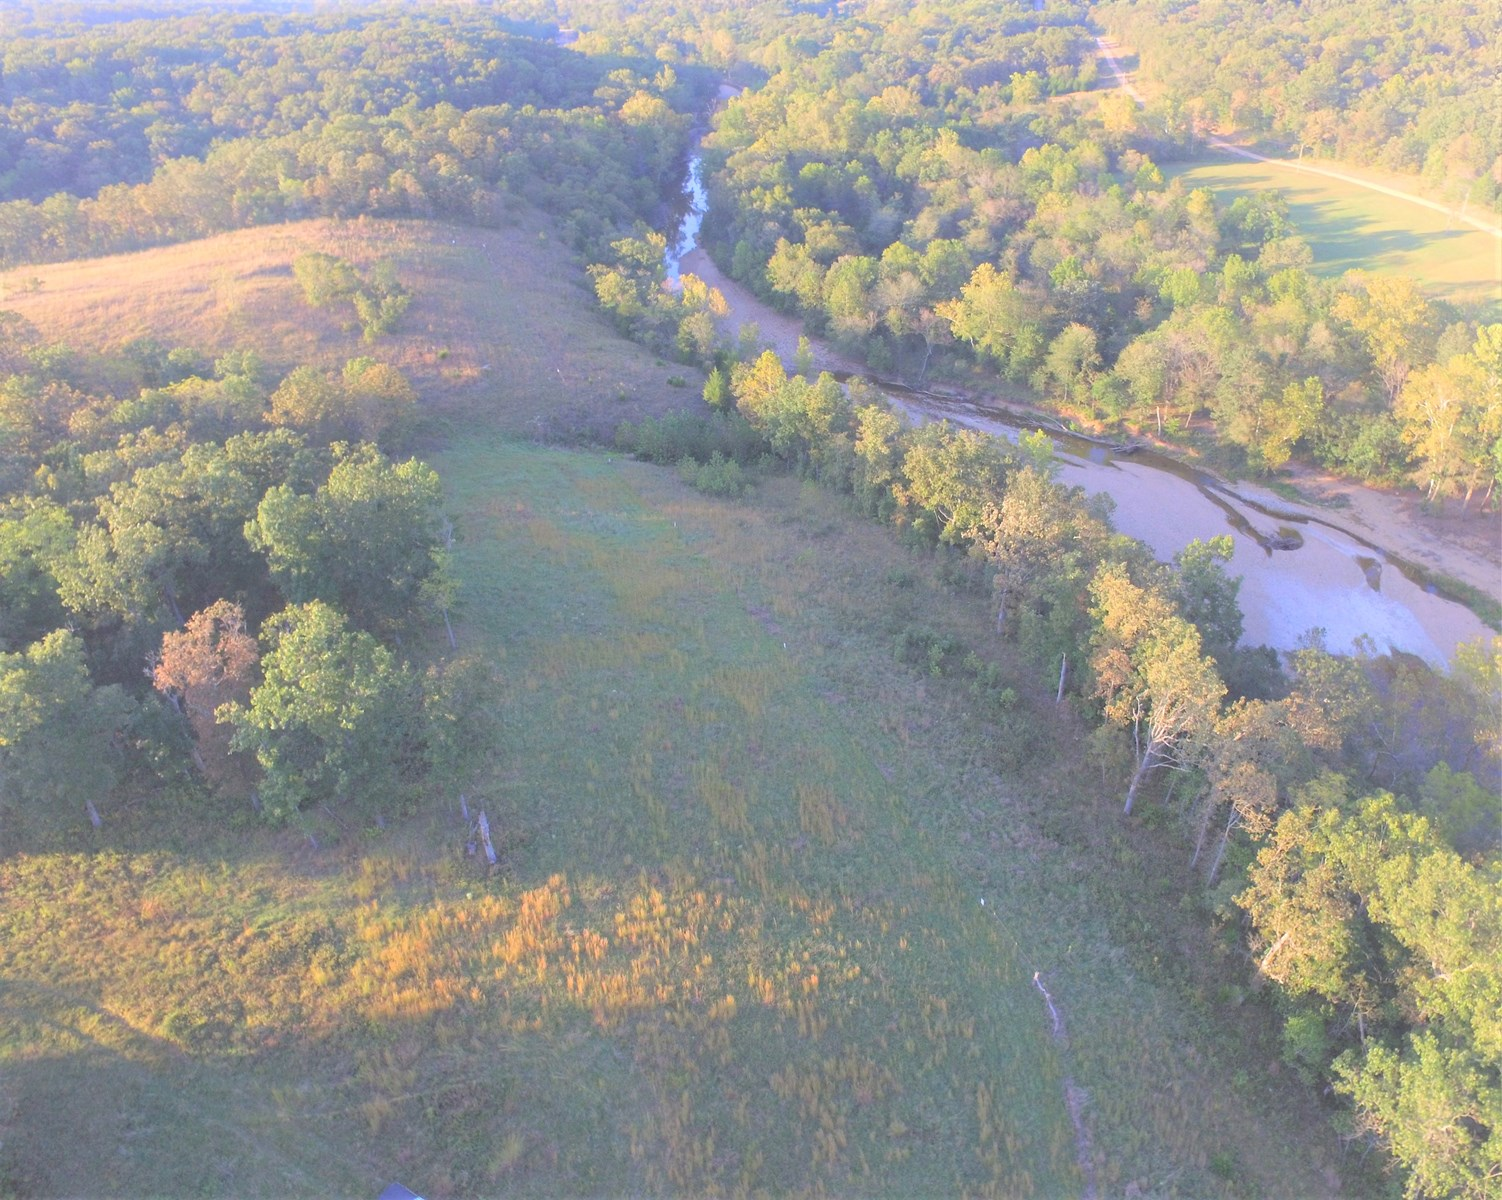 2126 Acres +/- Ranch/Hunting Property Benton County Missouri